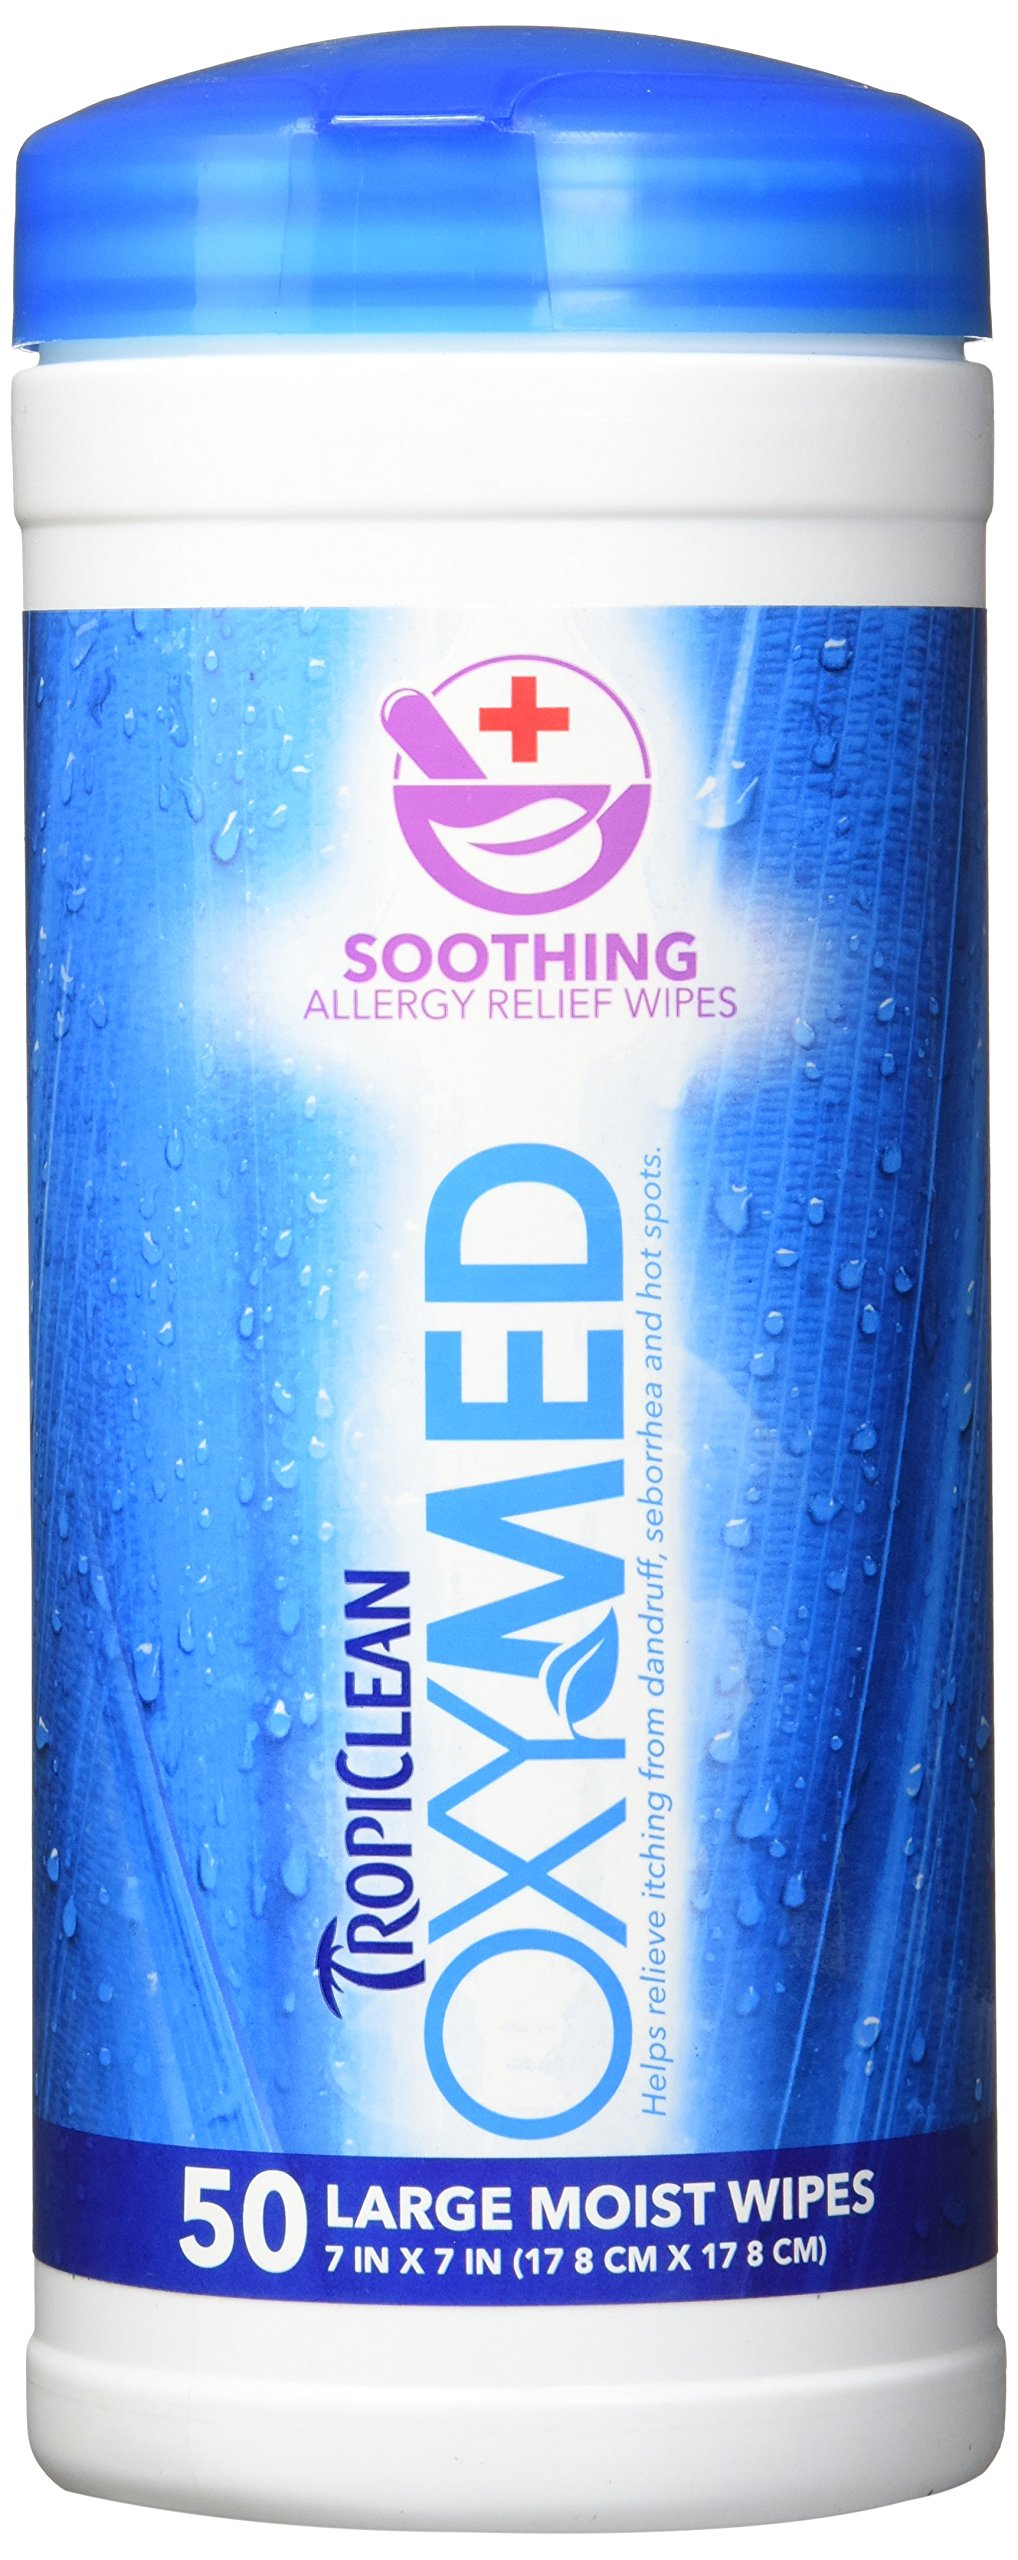 TropiClean OXYMED Soothing Relief Wipes, 50 ct